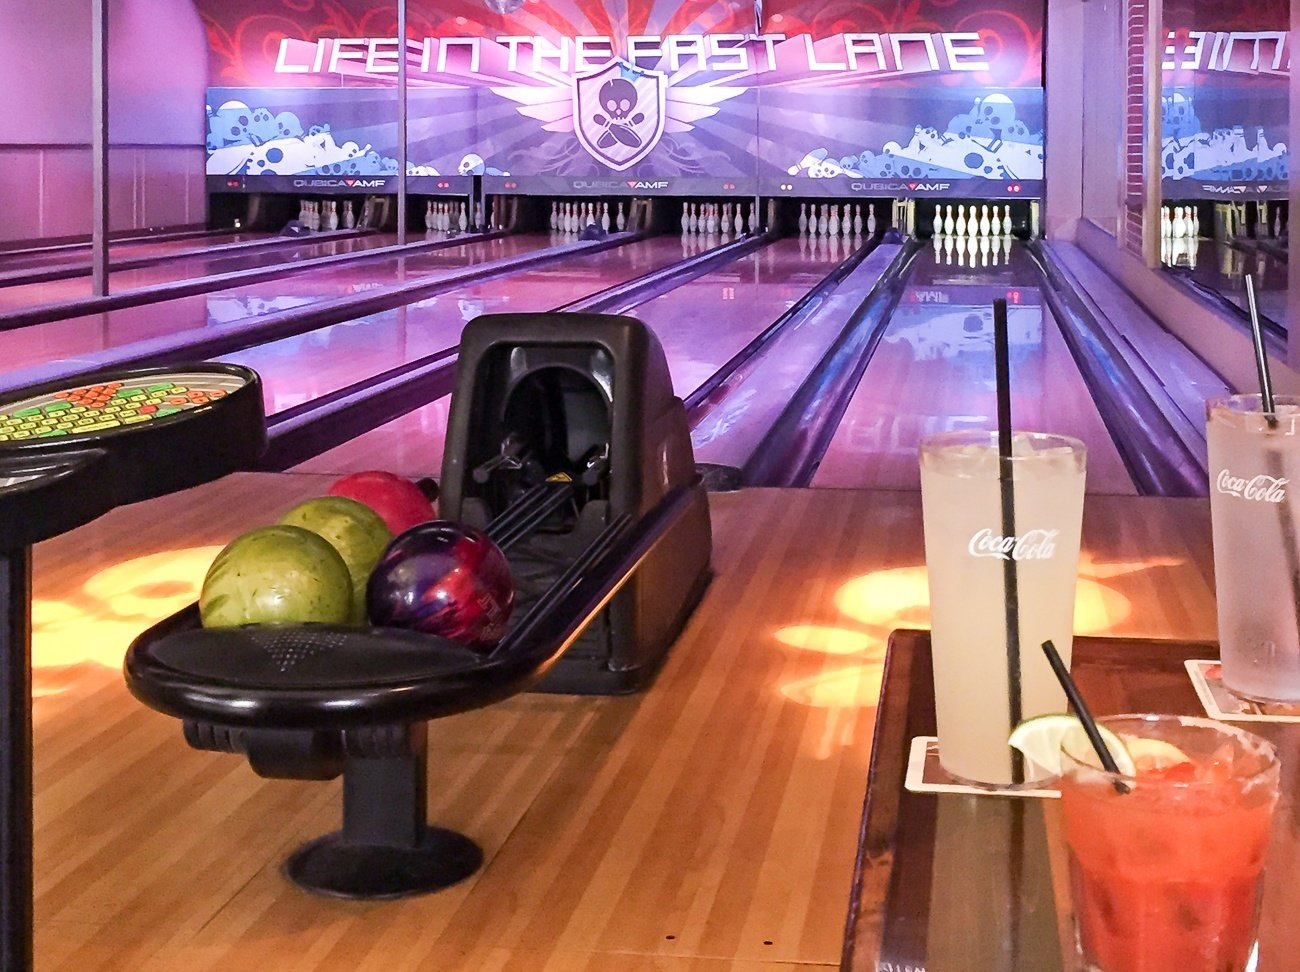 The lanes at East Village Tavern and Bowl